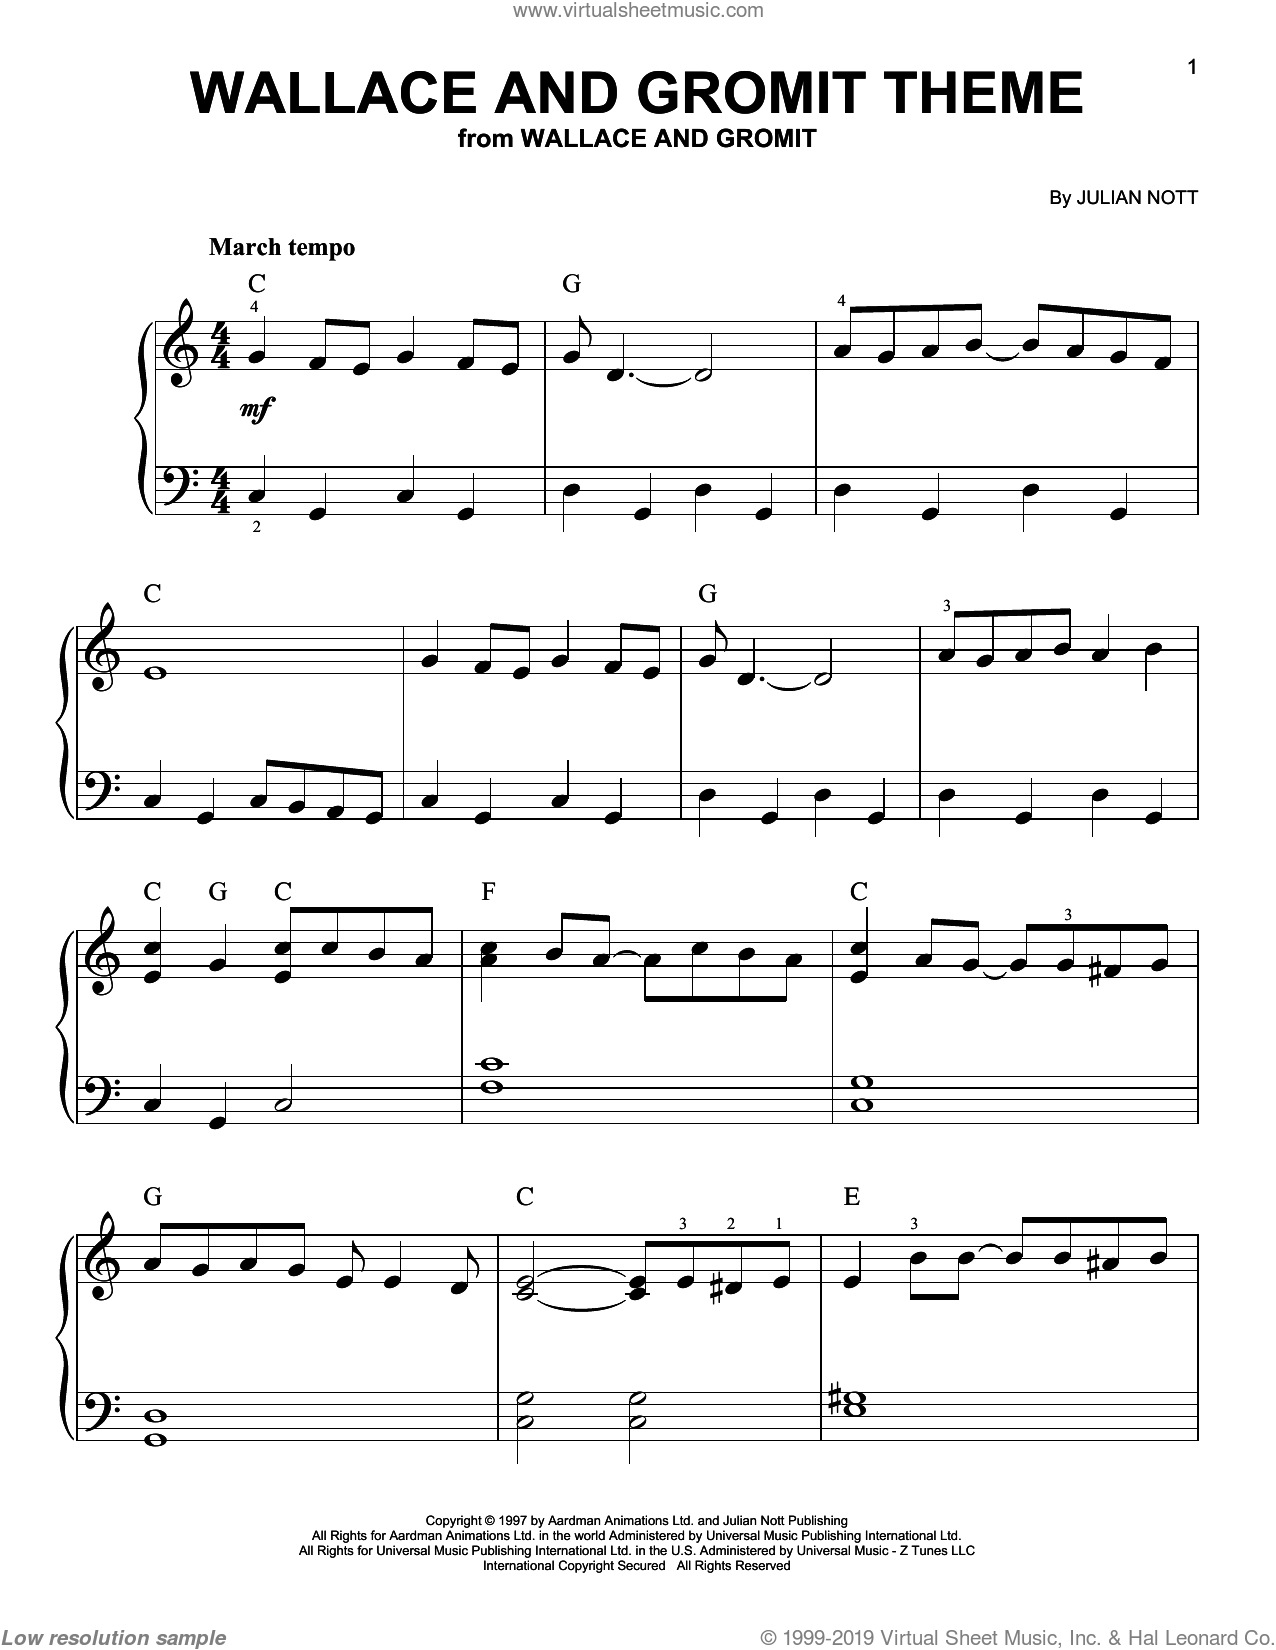 Wallace And Gromit Theme, (easy) sheet music for piano solo by Julian Nott, easy skill level